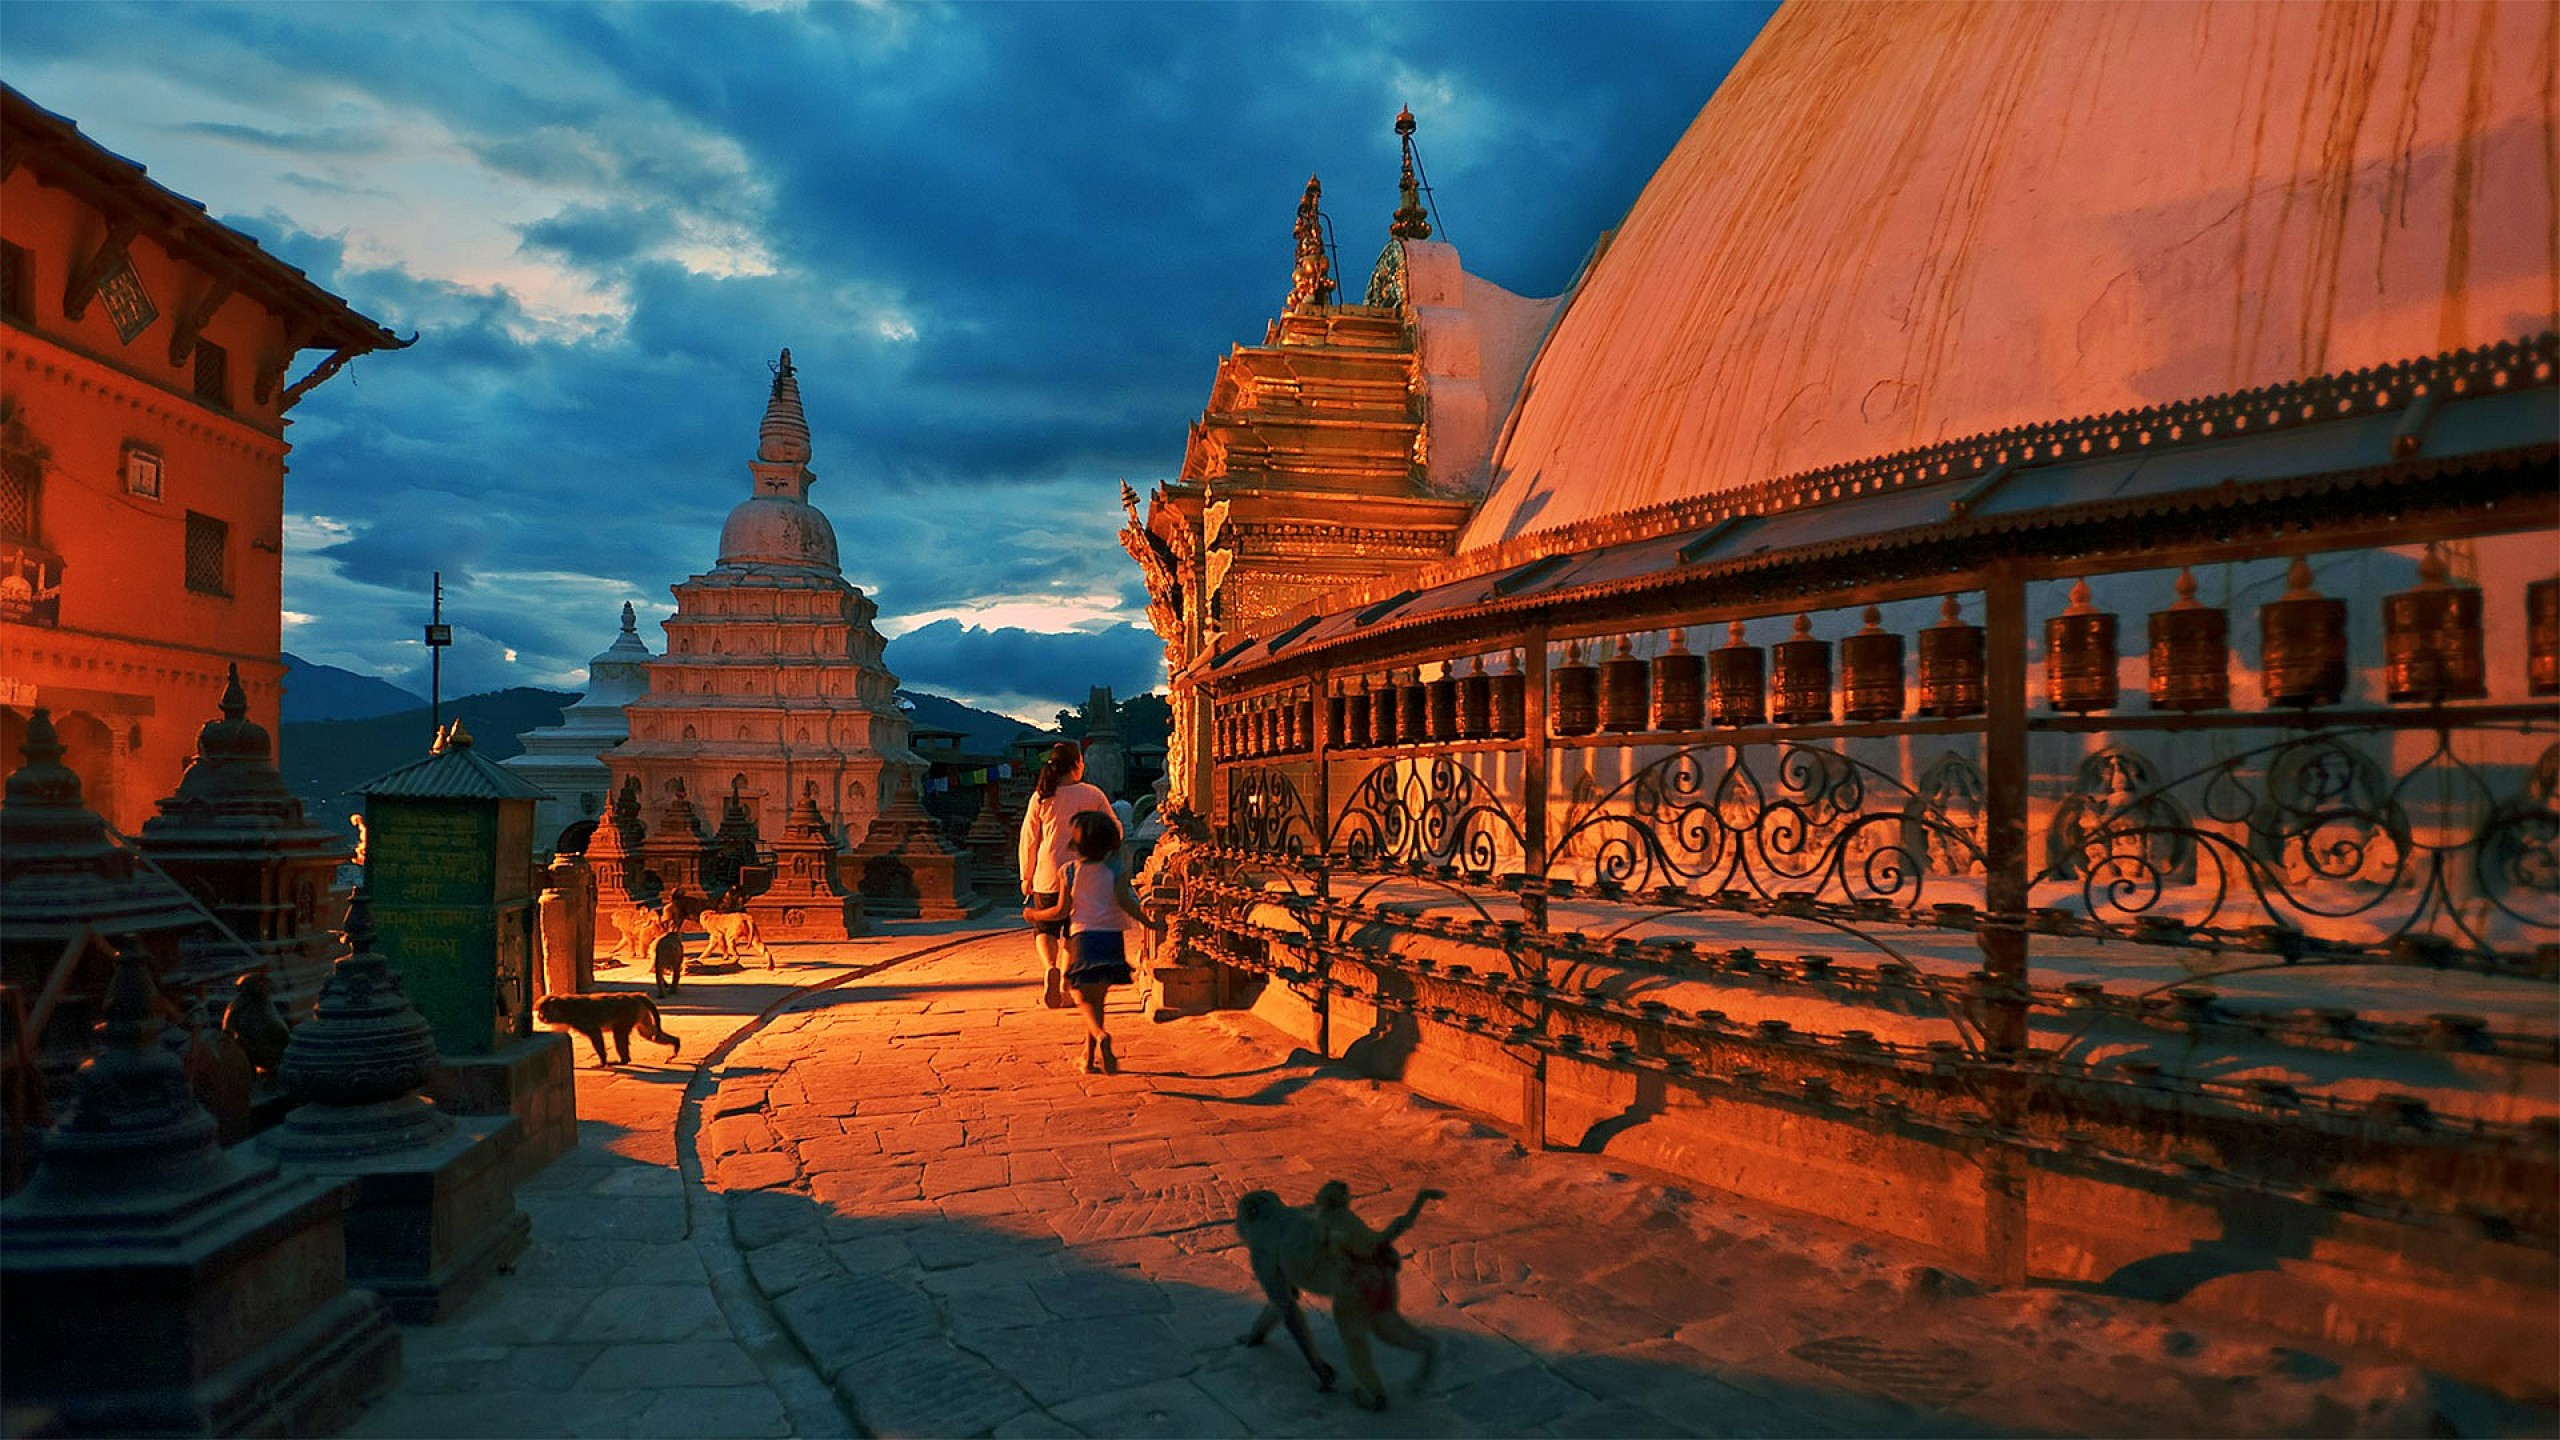 FDZ 26 Pictures of Nepal HD 47 Best Wallpapers 2560x1440